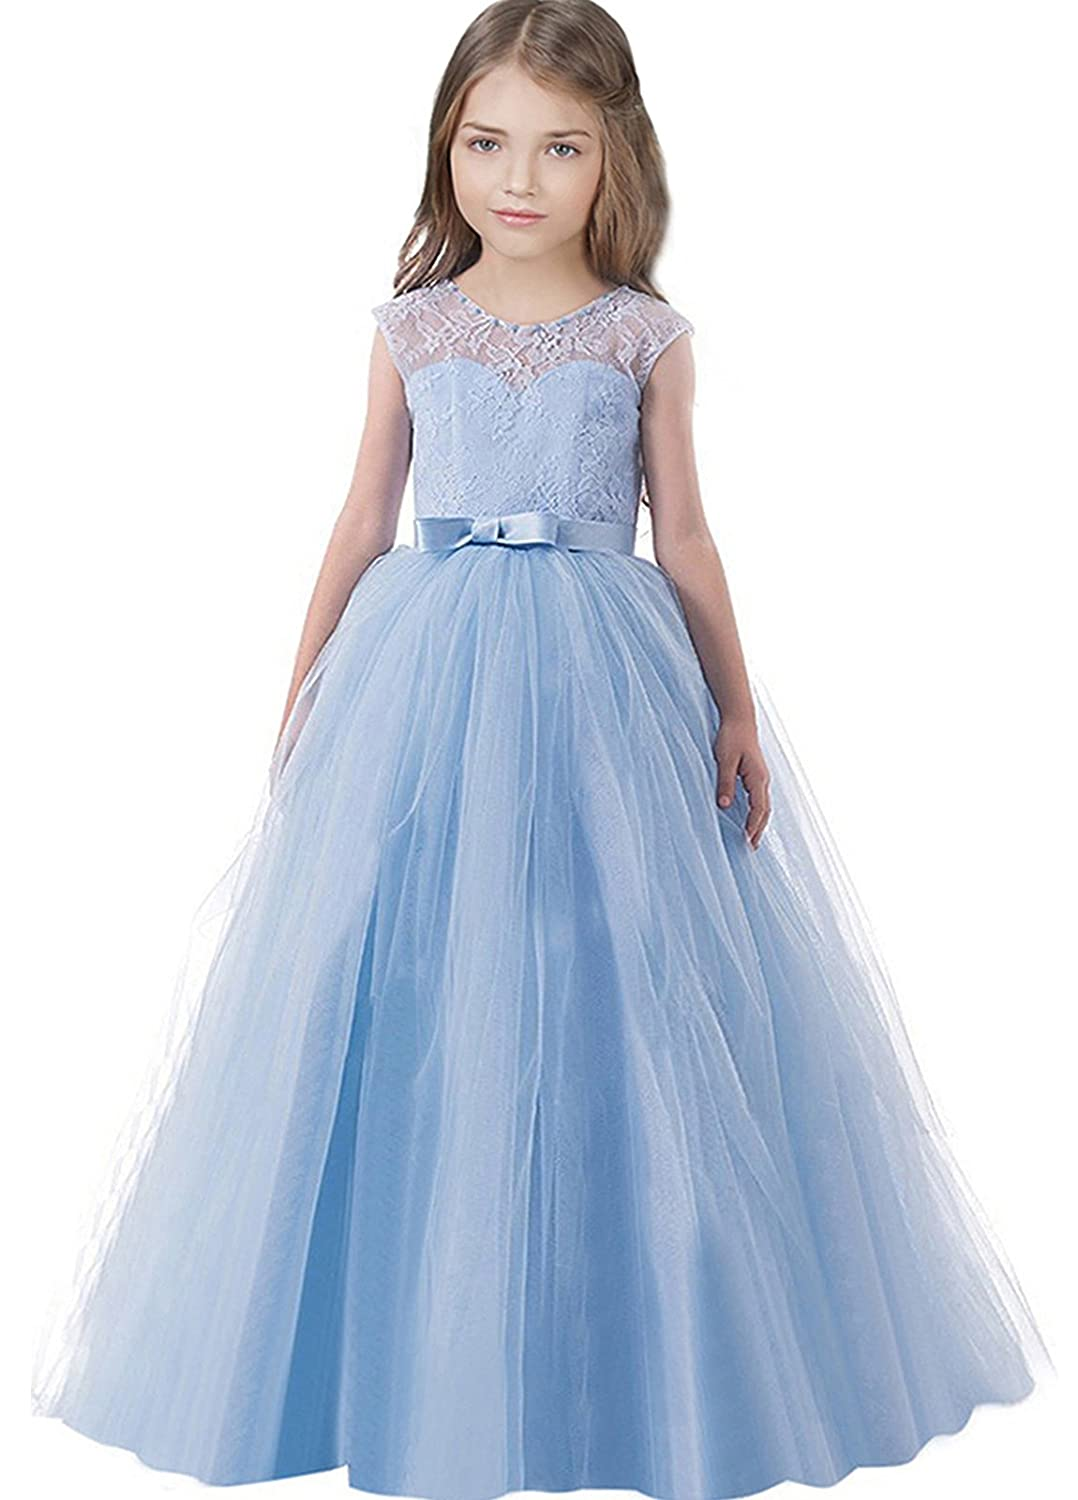 Amazon.com: TTYAOVO Sleeveless Chiffon Embroidered Ball Gown Girls ...